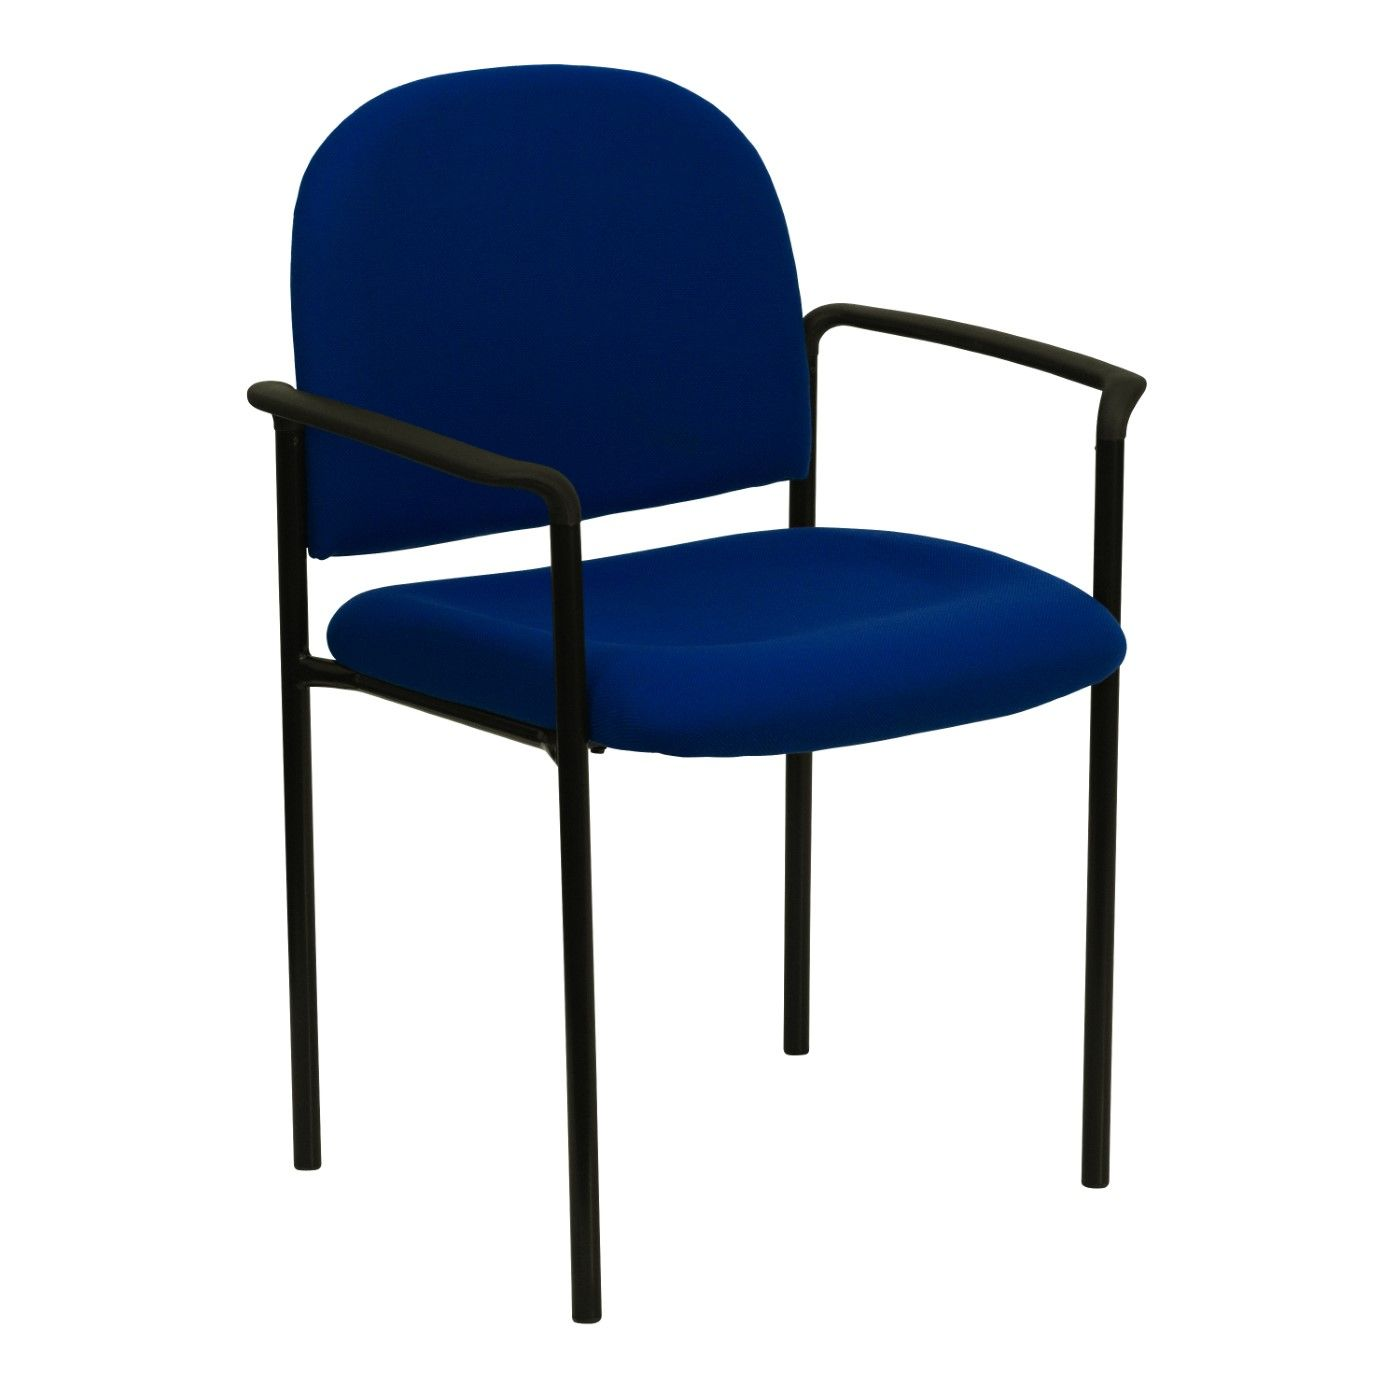 Comfort Navy Fabric Stackable Steel Side Reception Chair with Arms